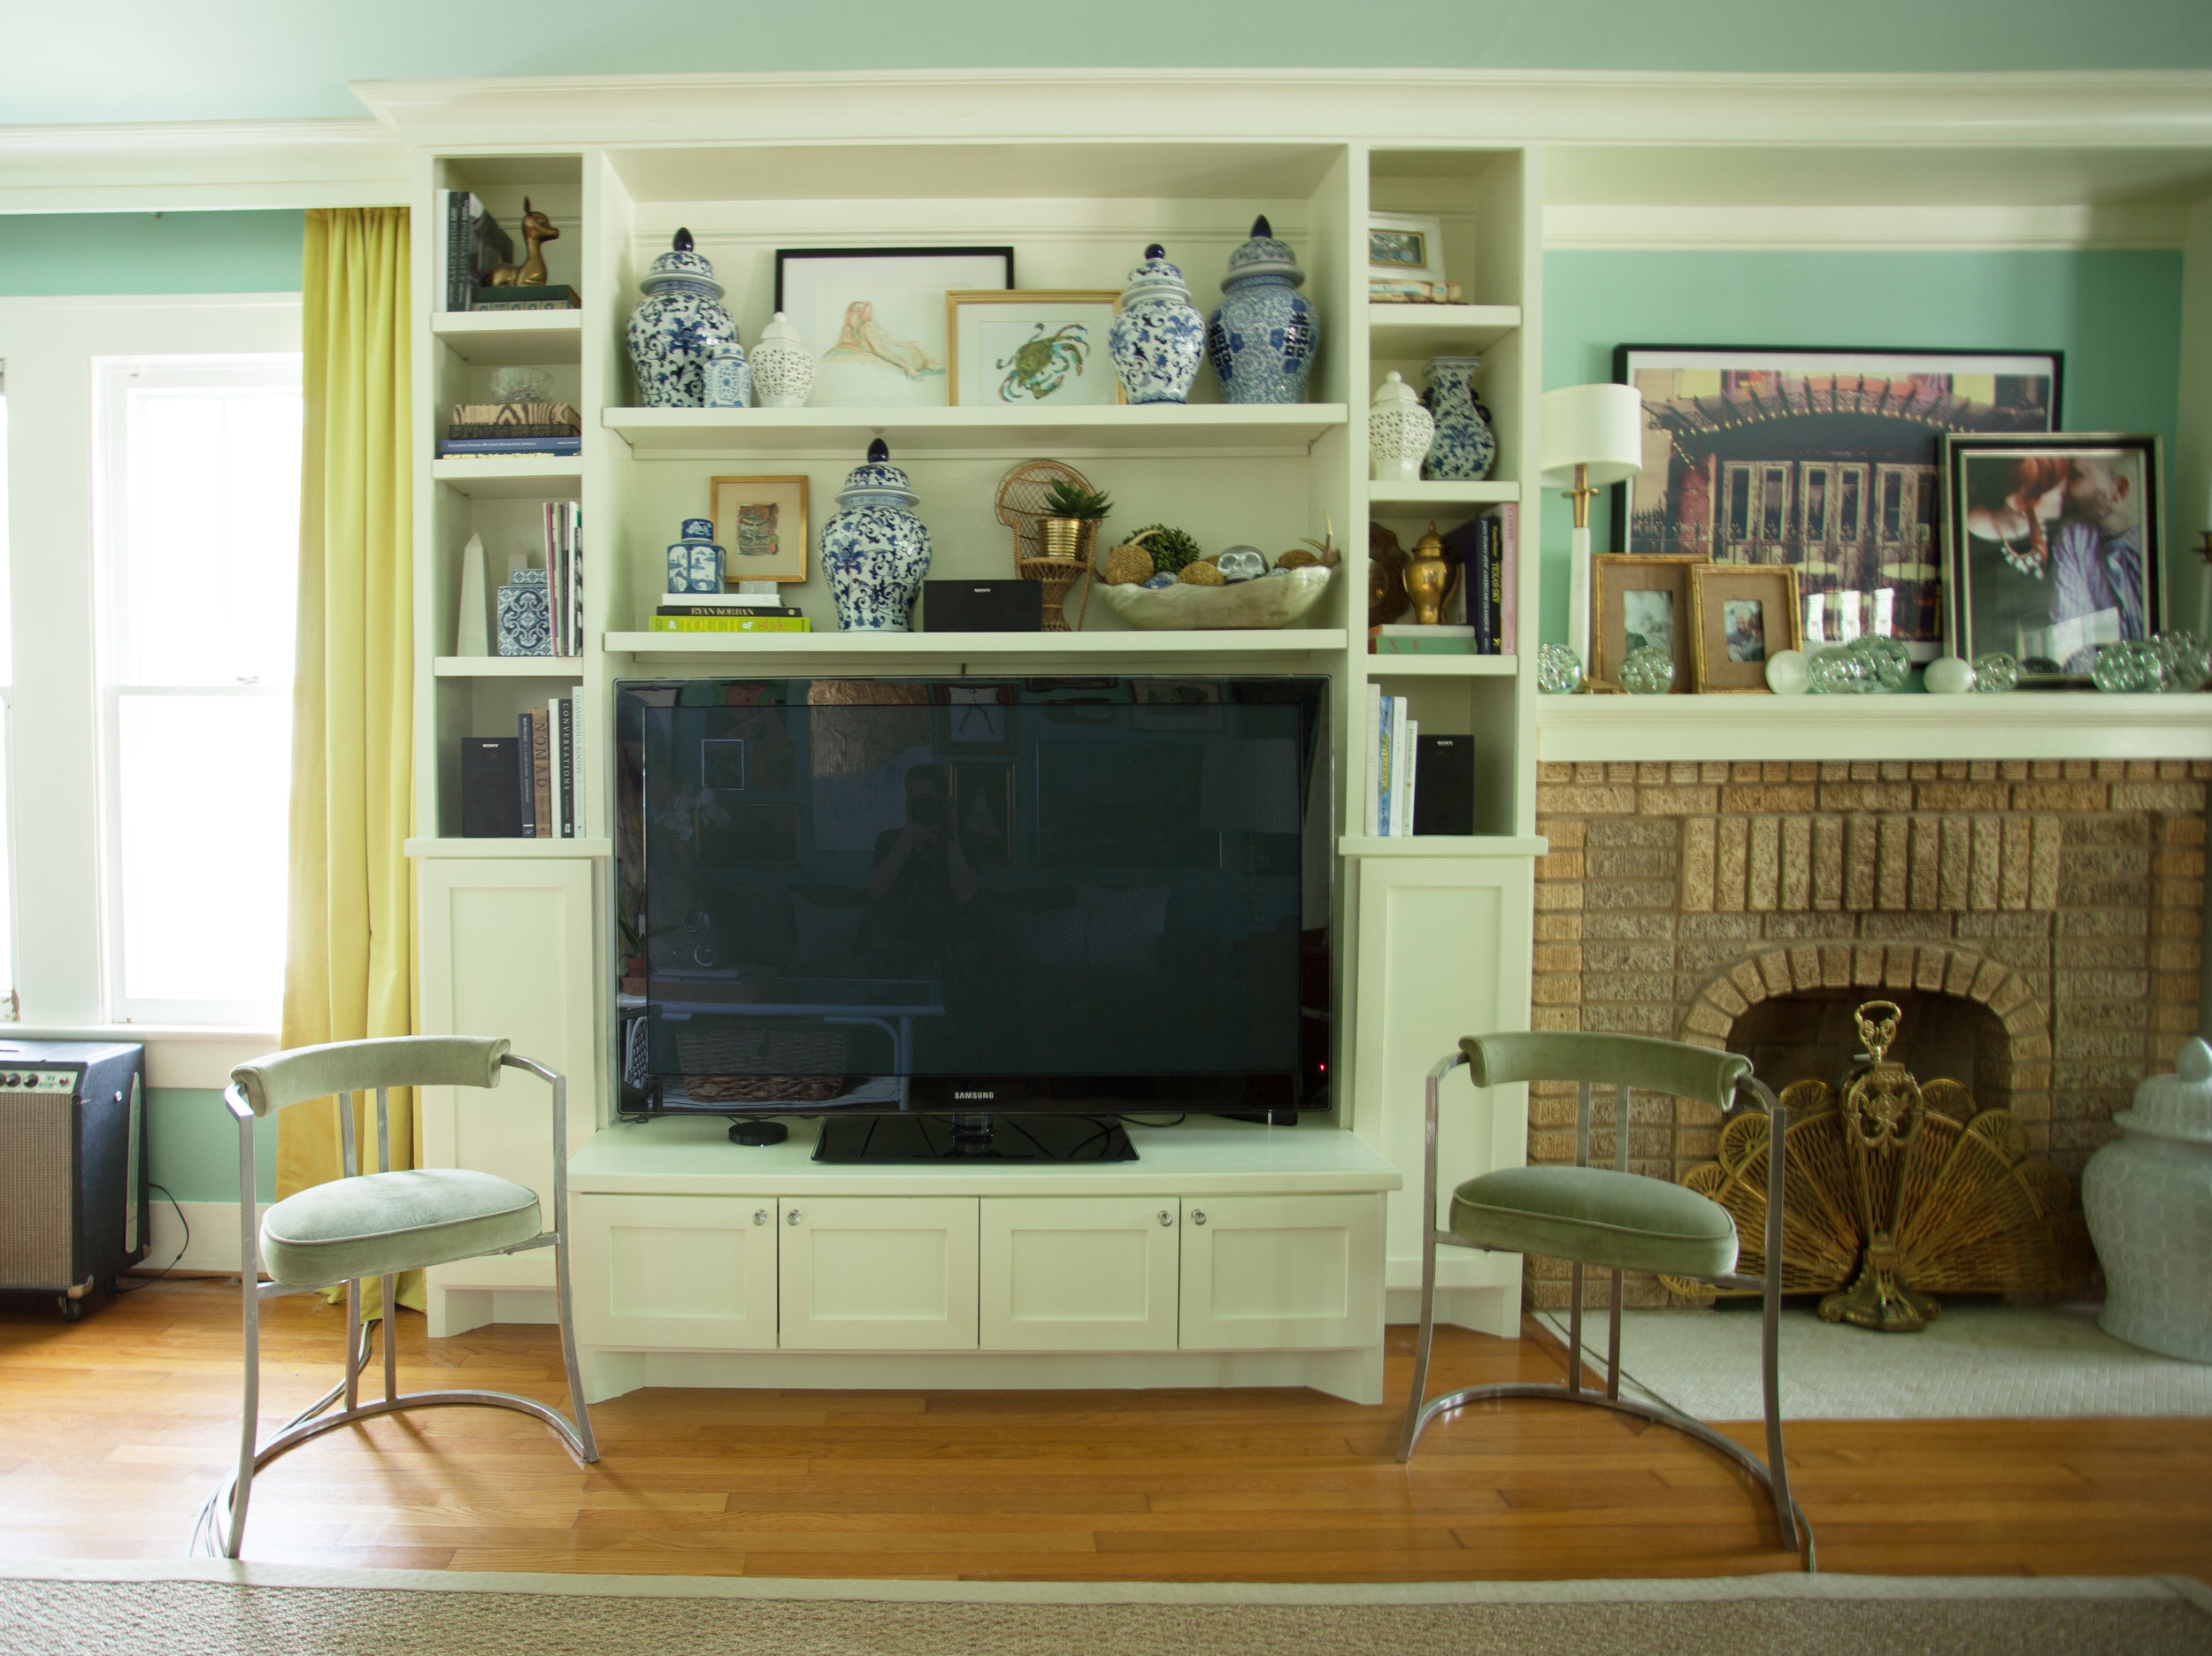 Built-in TV cabinet around fireplace in living room in a 1920s Houston Heights bungalow by Jamie House Design. Updated historic bungalow.